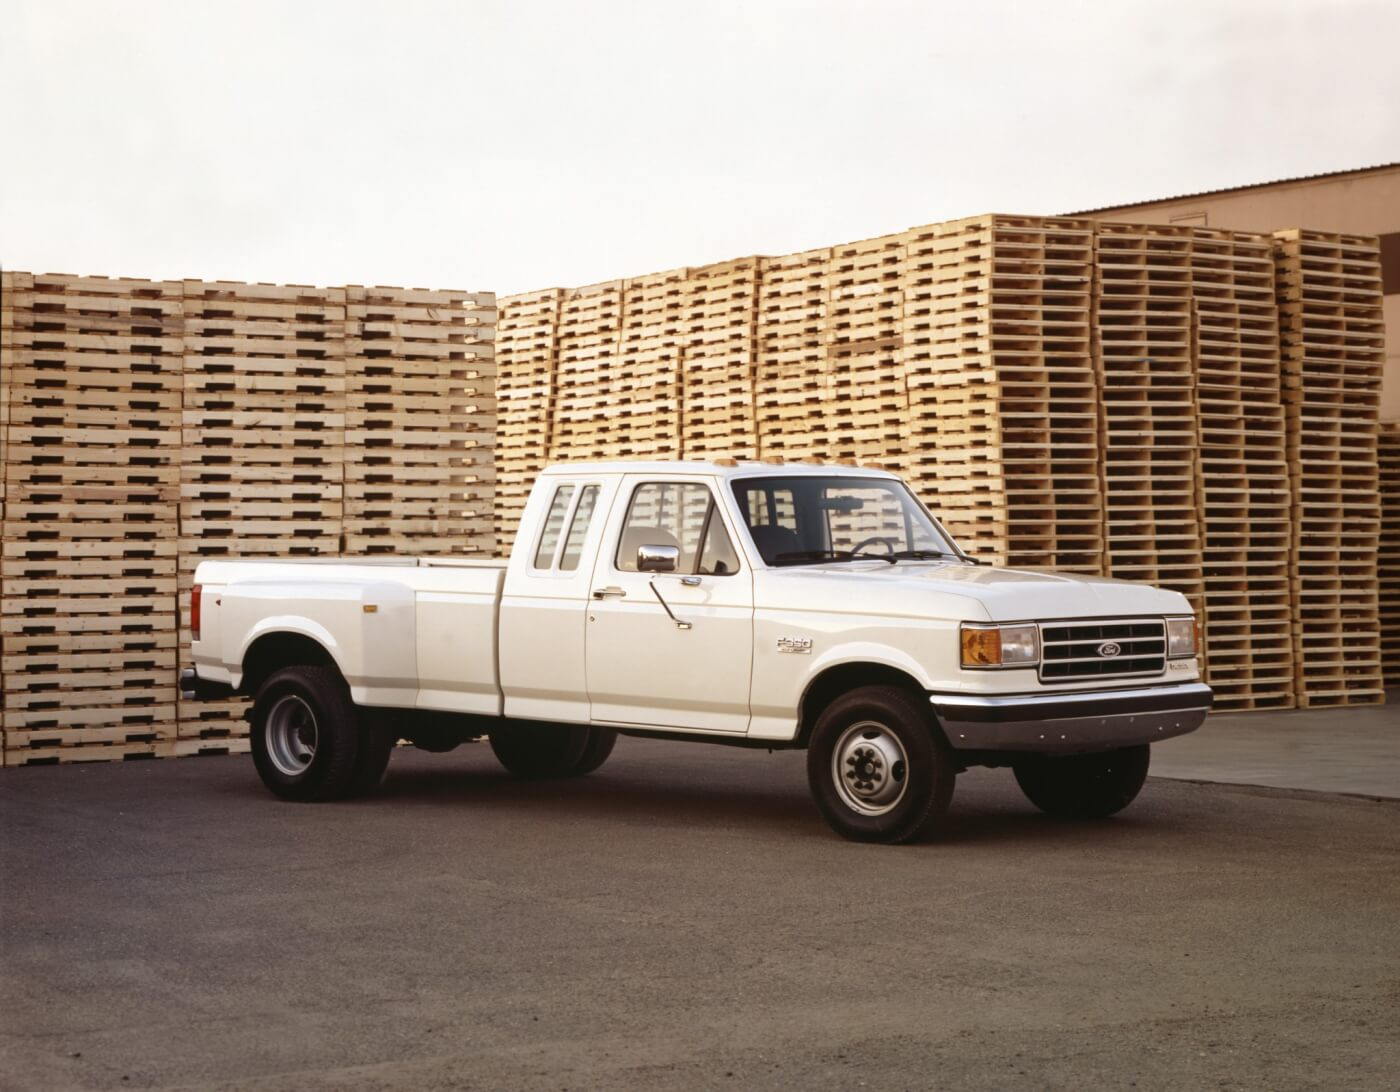 In 1990 you could get a diesel-powered SuperCab F-350 XLT Lariat dually